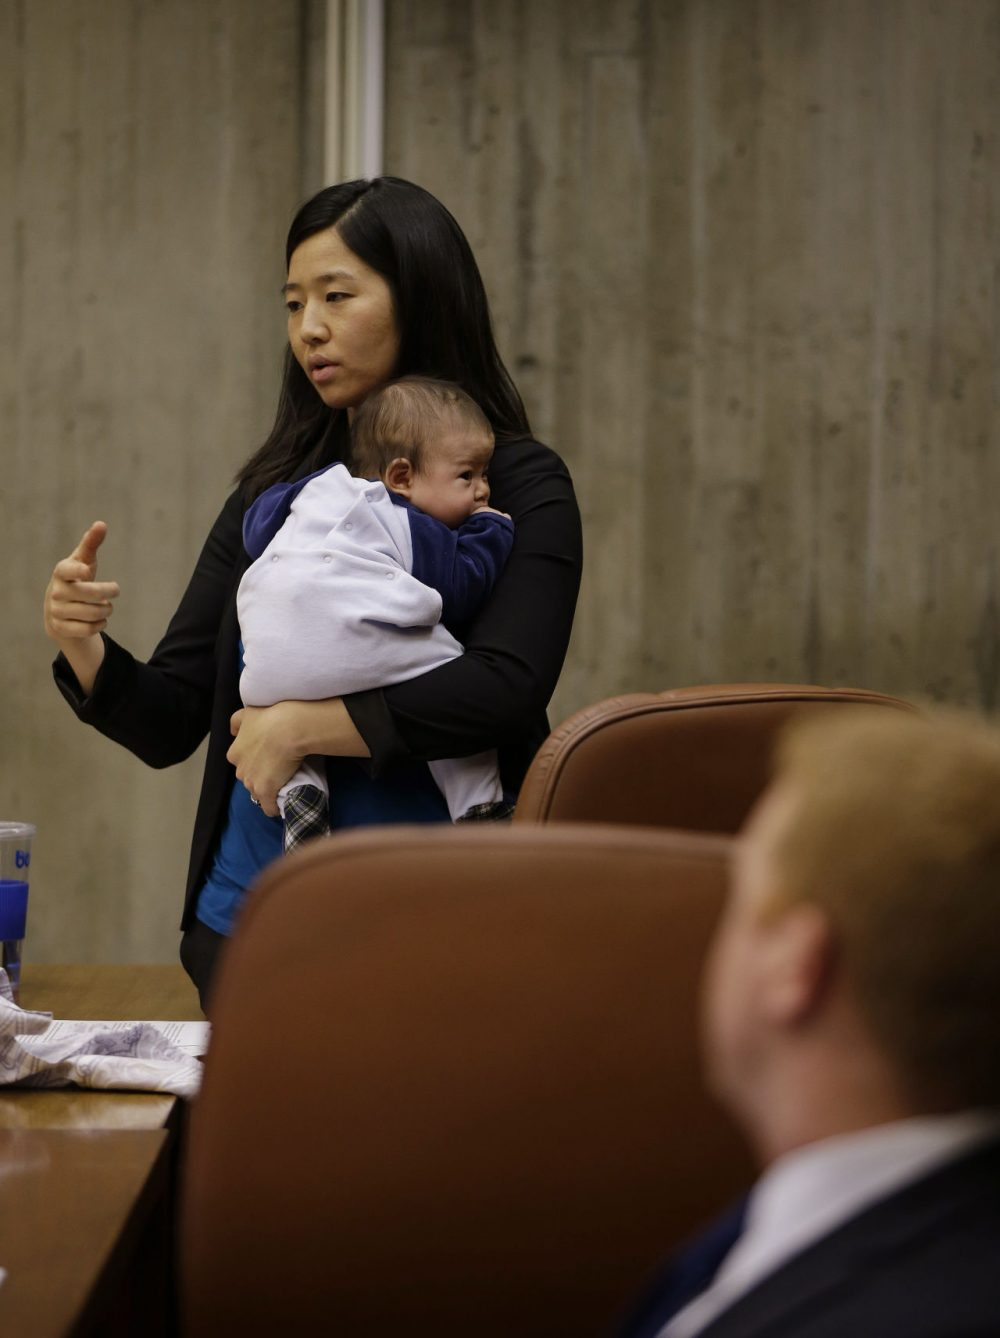 Boston City Councilwoman Michelle Wu holds her 11 week-old son as she asks a question of a member of Boston 2024. (Stephan Savoia/AP)